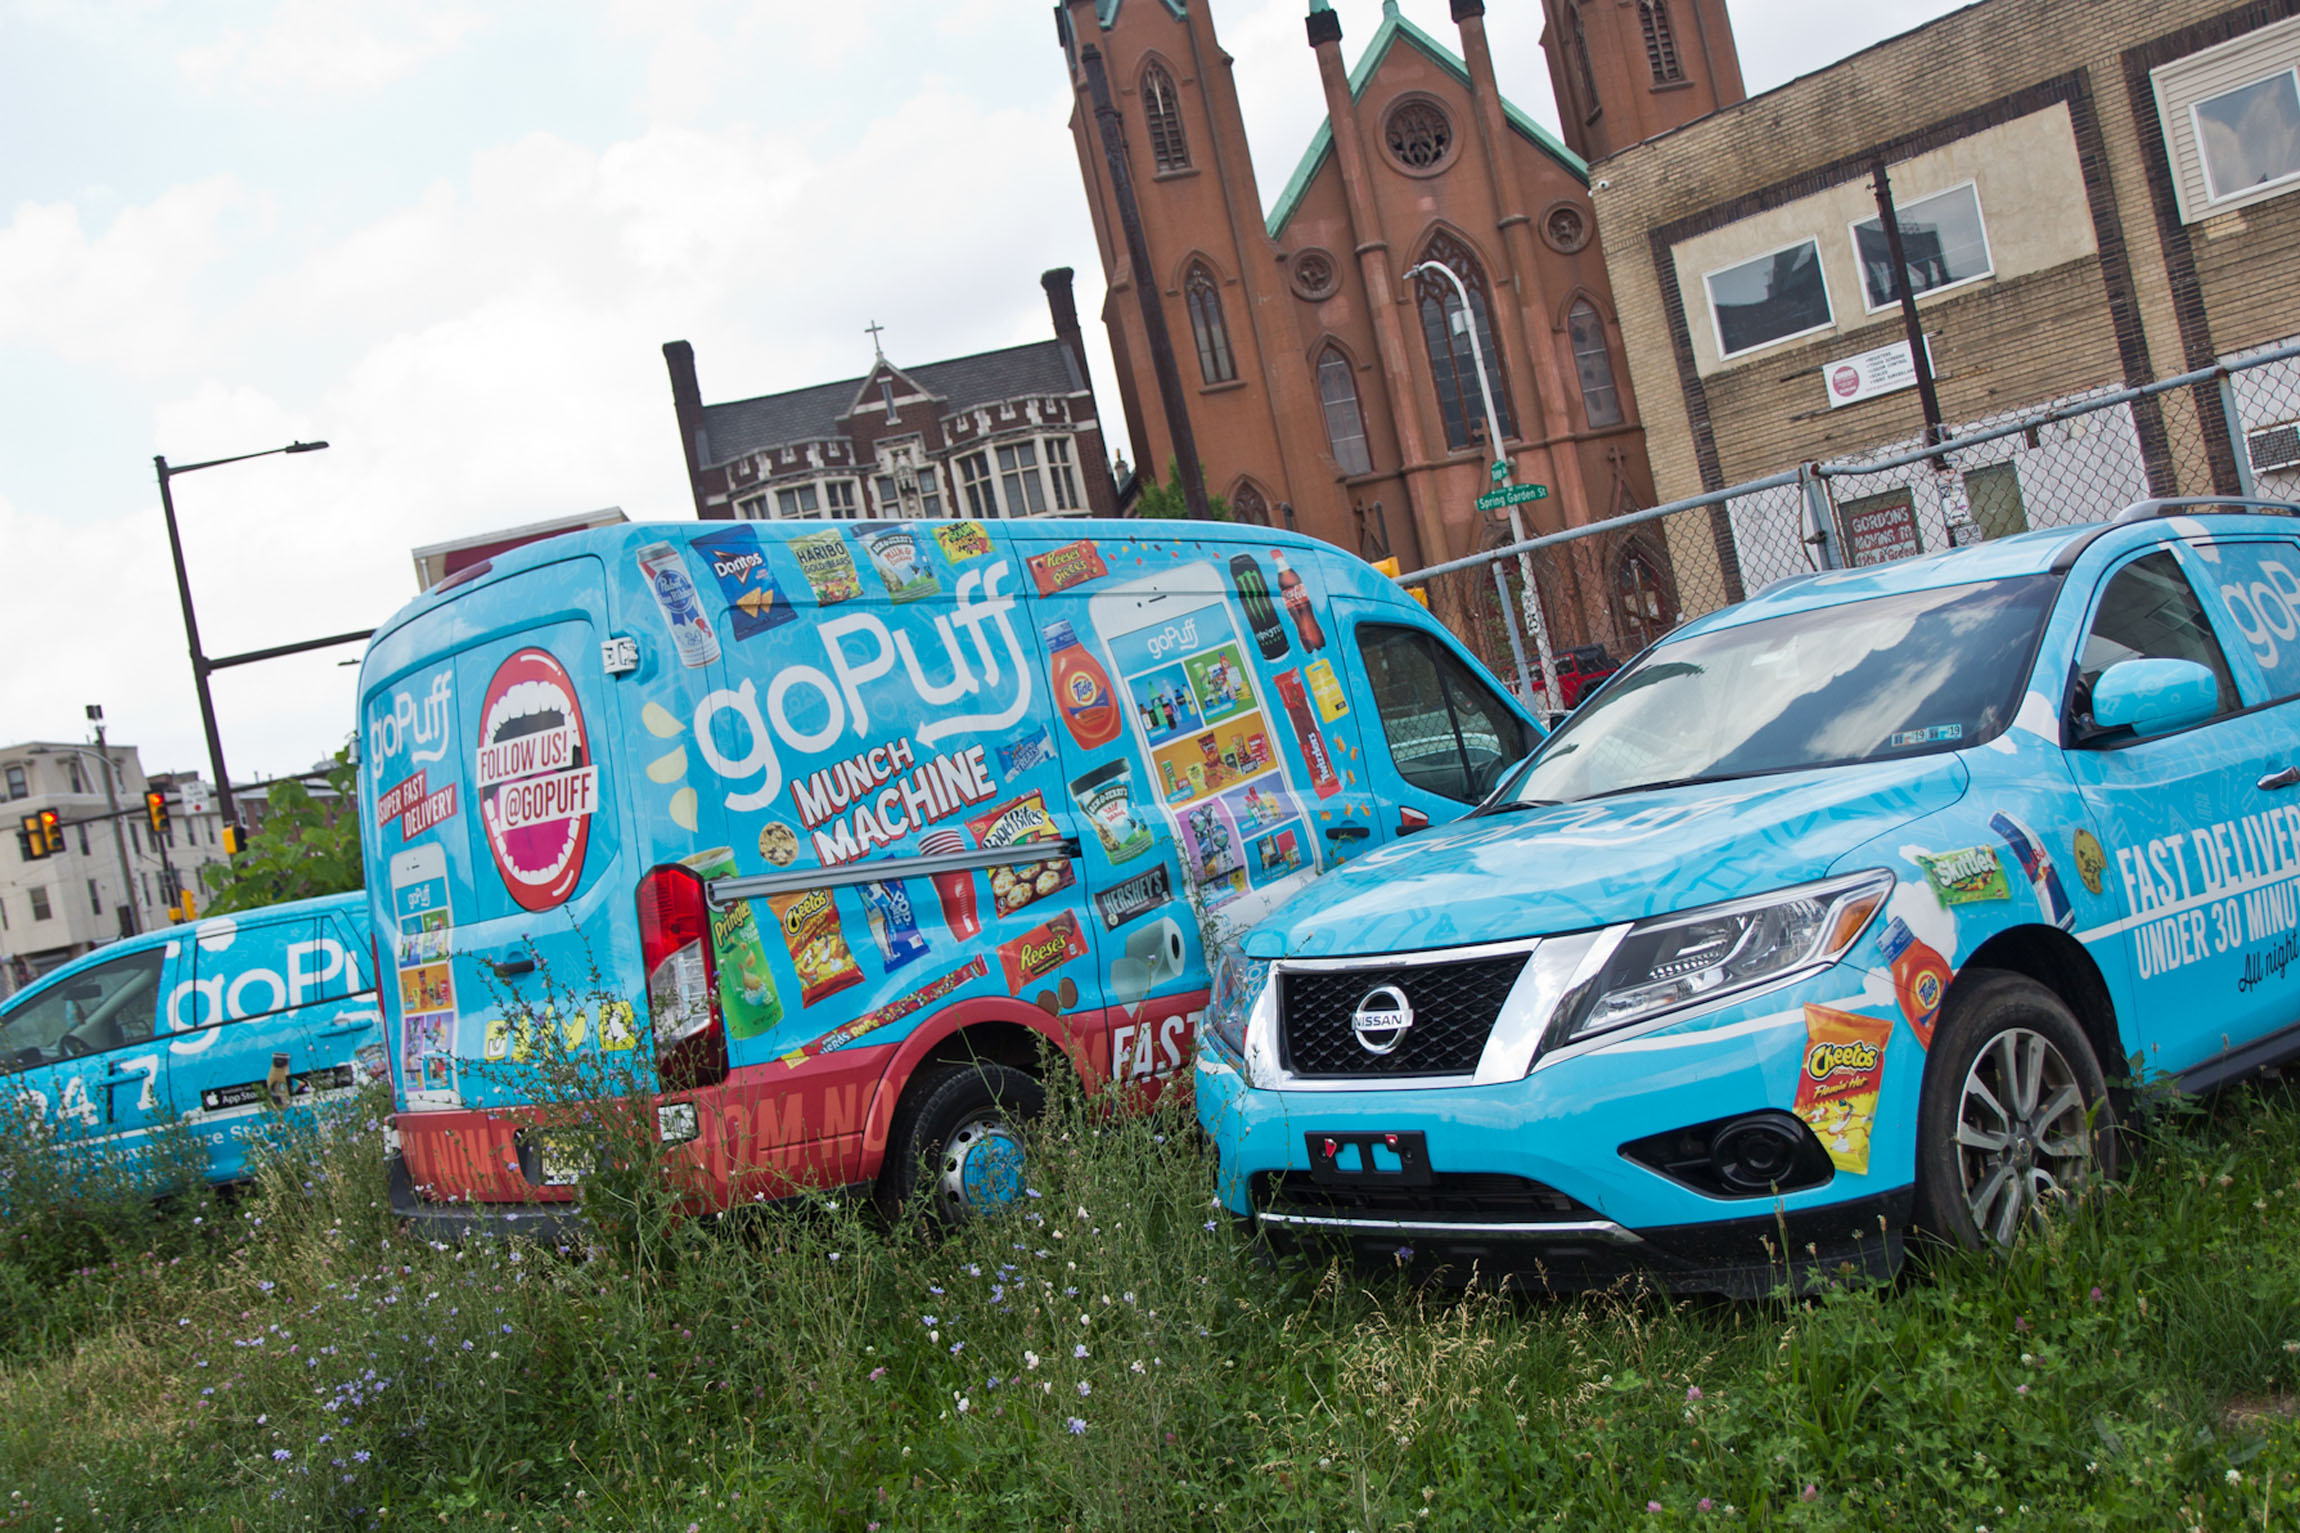 New Jersey asks delivery service goPuff for more information on tax break application